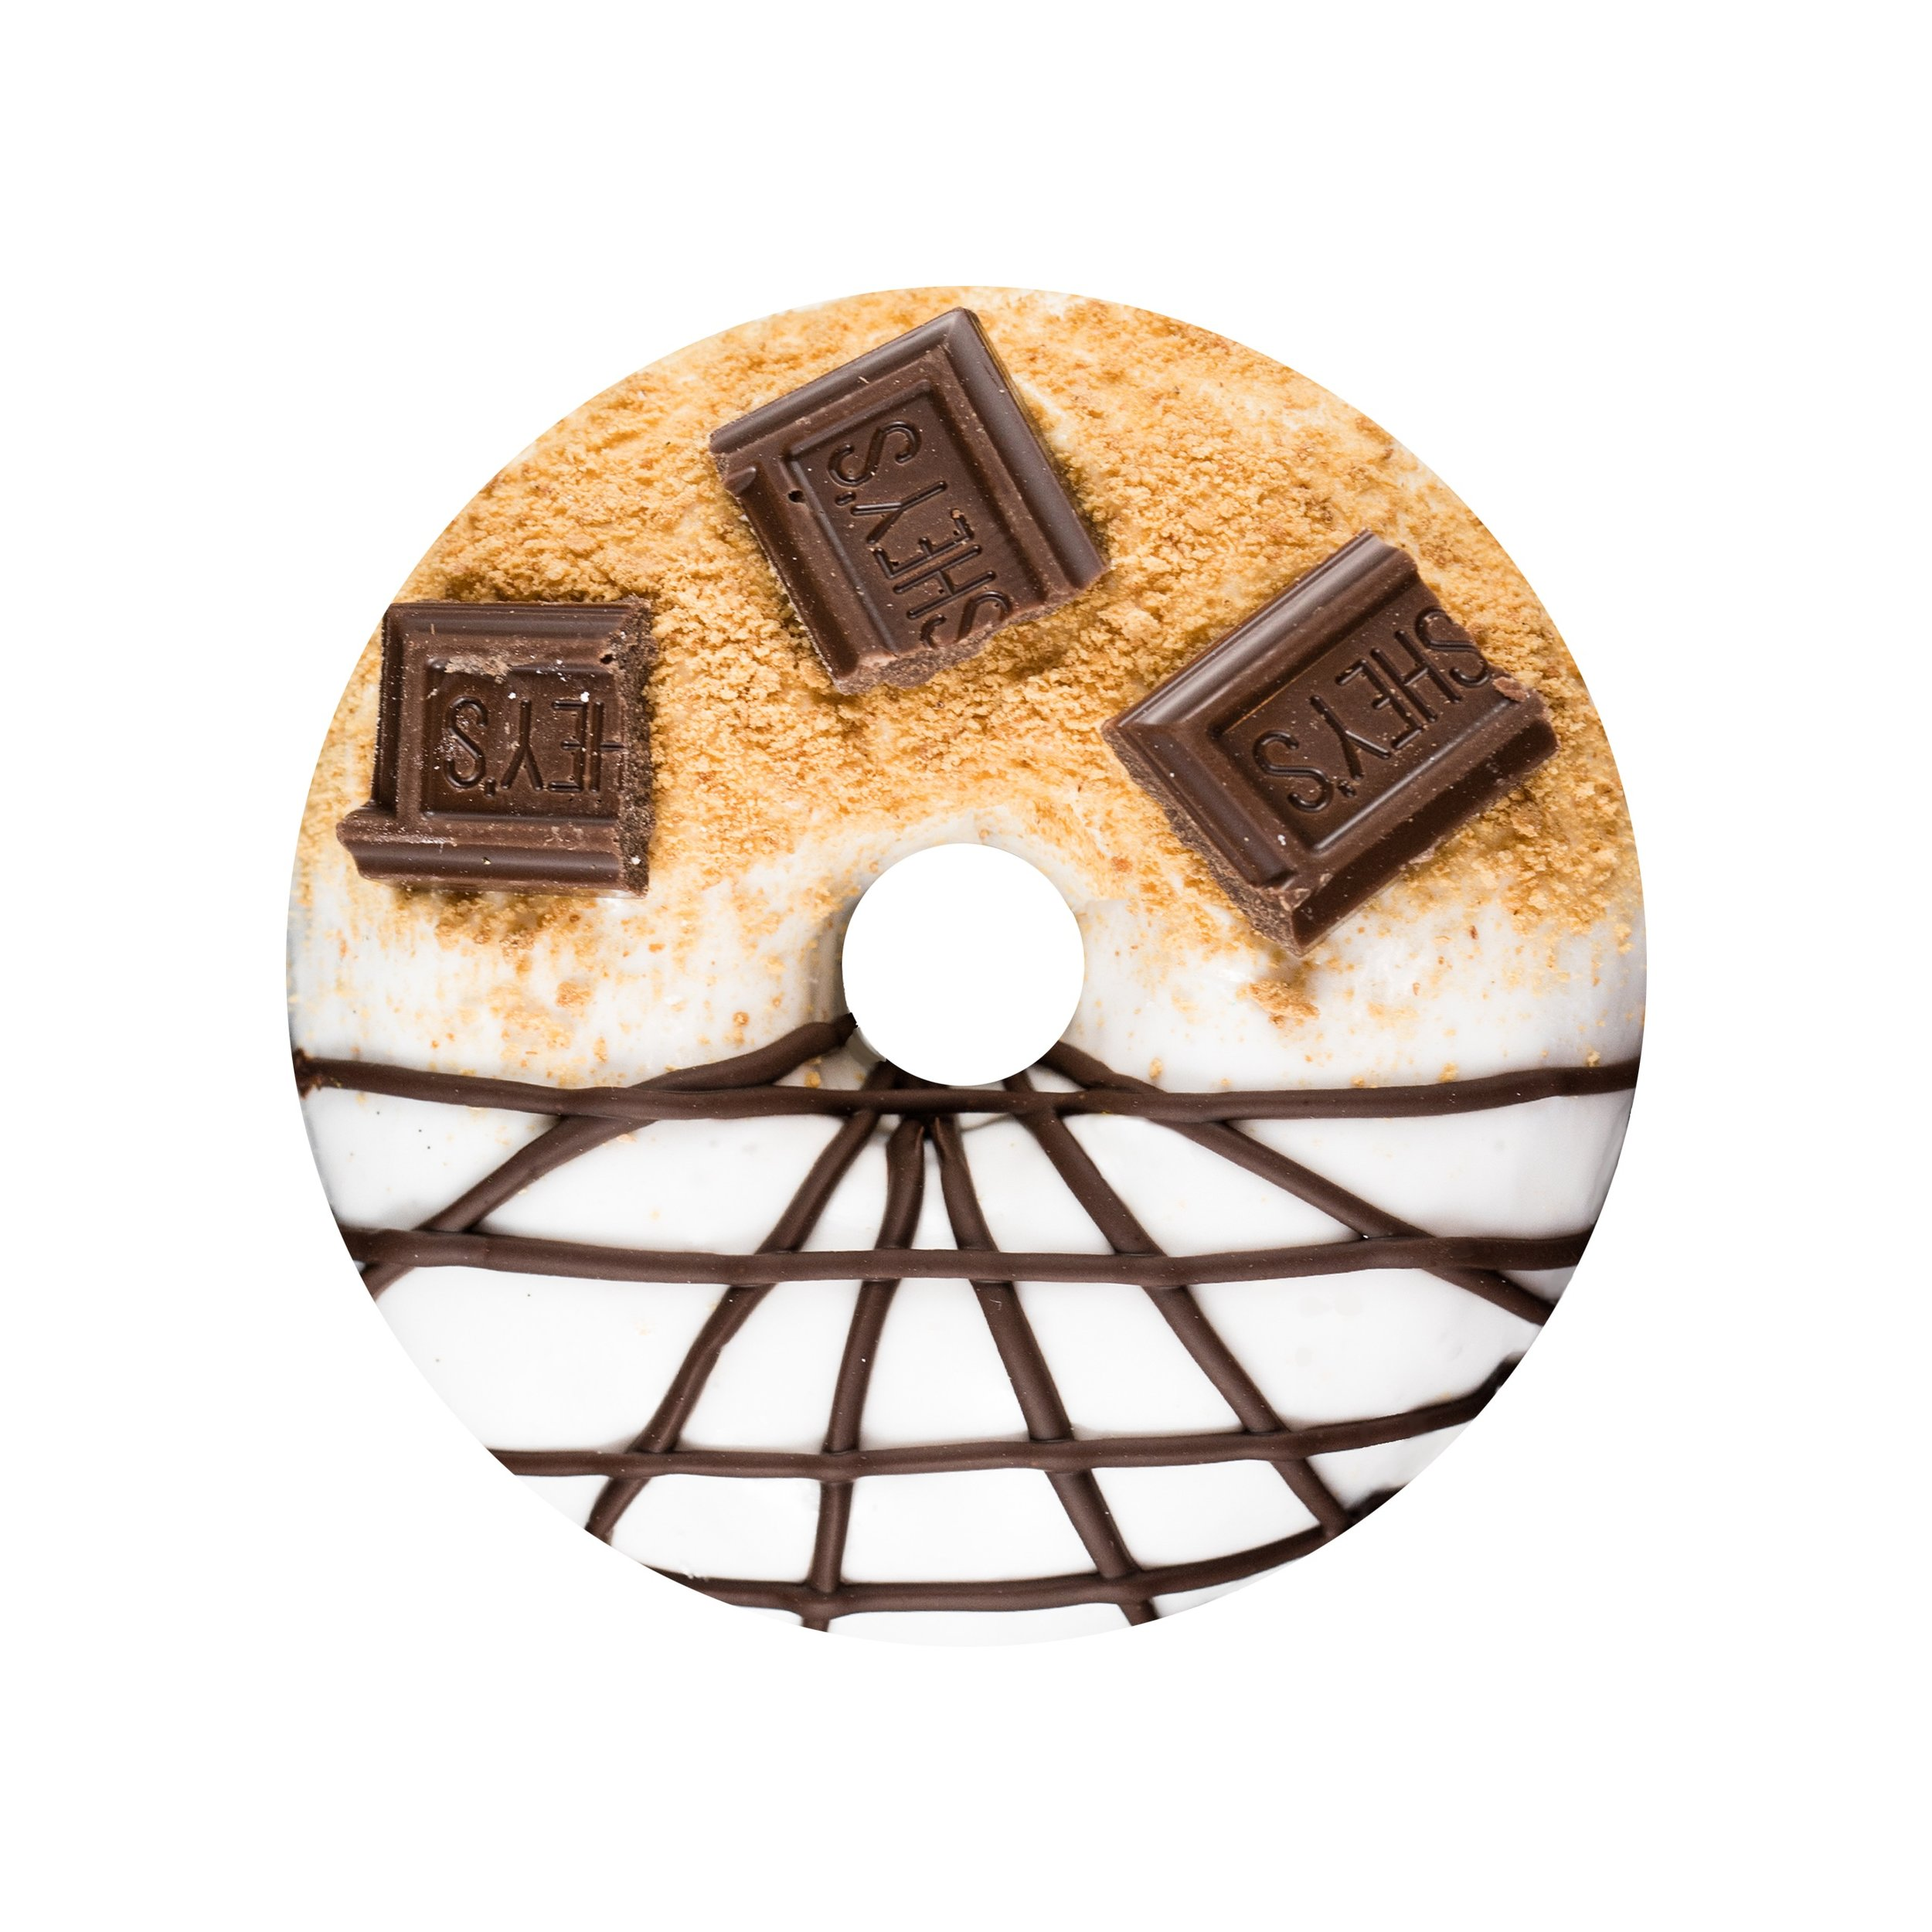 S'MORES - MARSHMALLOW GLAZE+ GRAHAM CRACKER CRUMBS+ HERSHEY'S SQUARES+ CHOCOLATE DRIZZLE